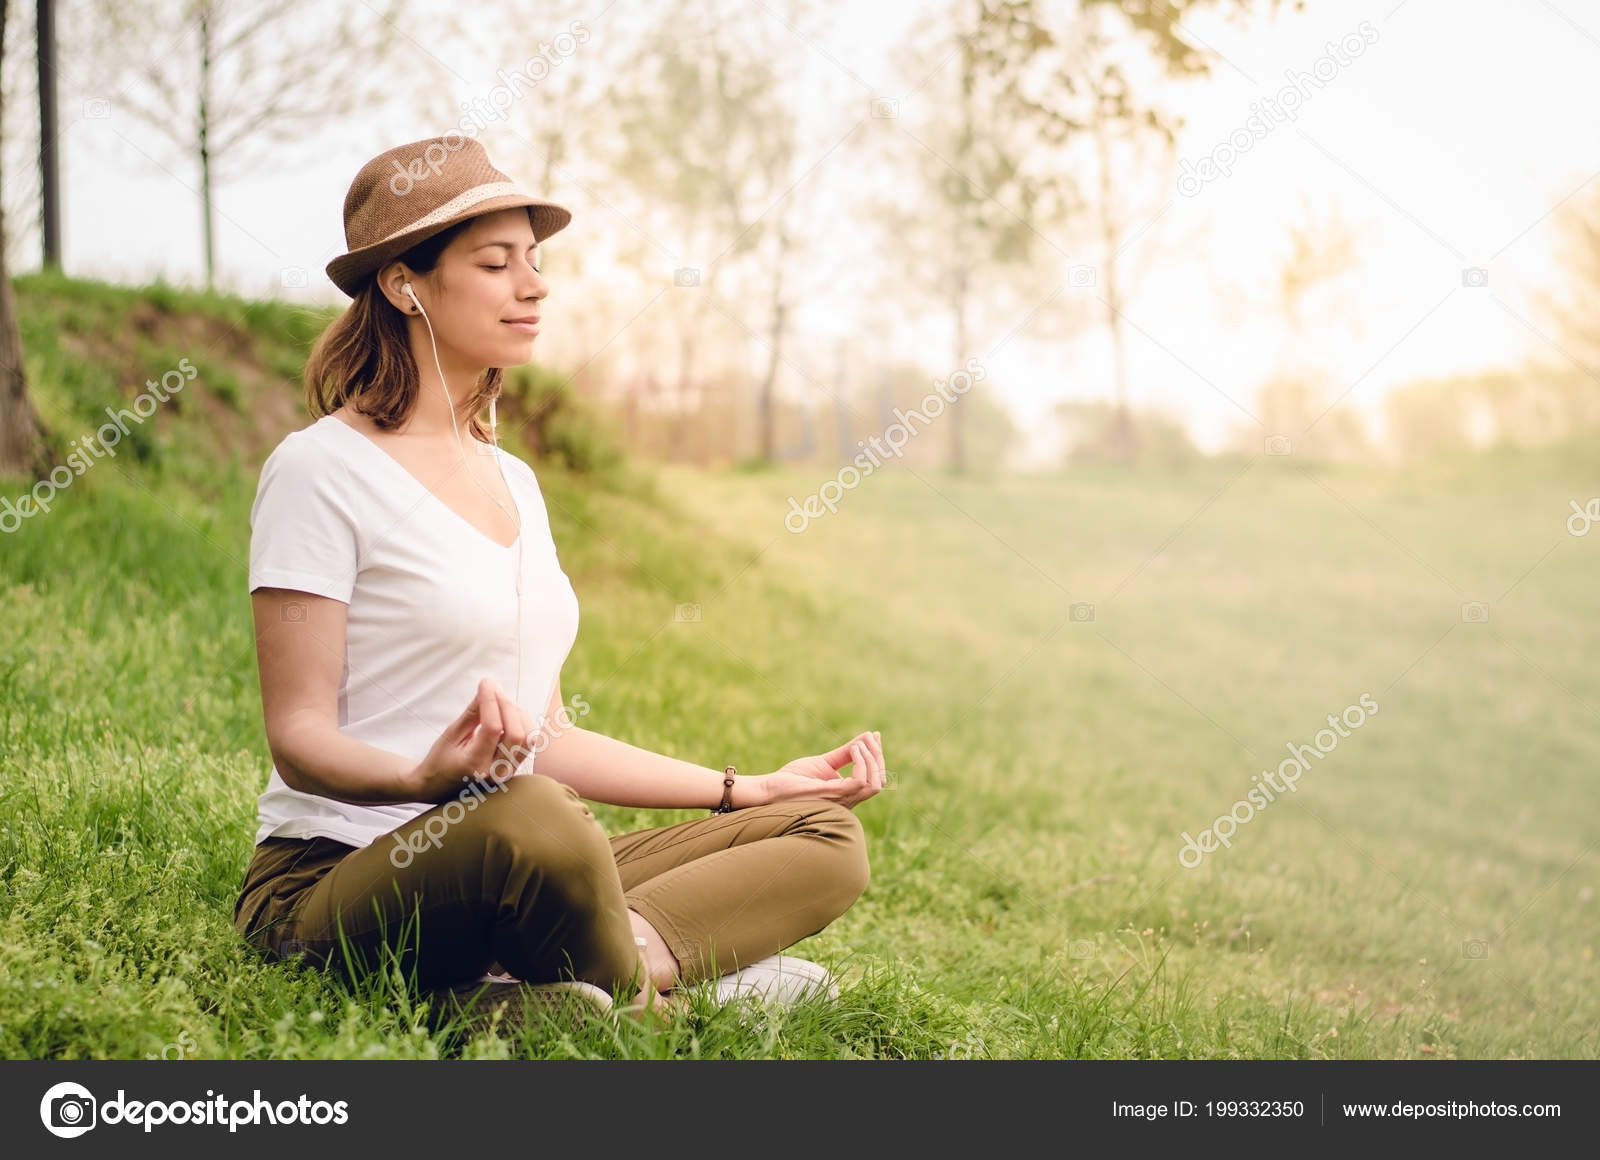 Young Beautiful Woman Meditating Nature Morning While Listening Music Sunrise Stock Photo C Eshana Blue 199332350